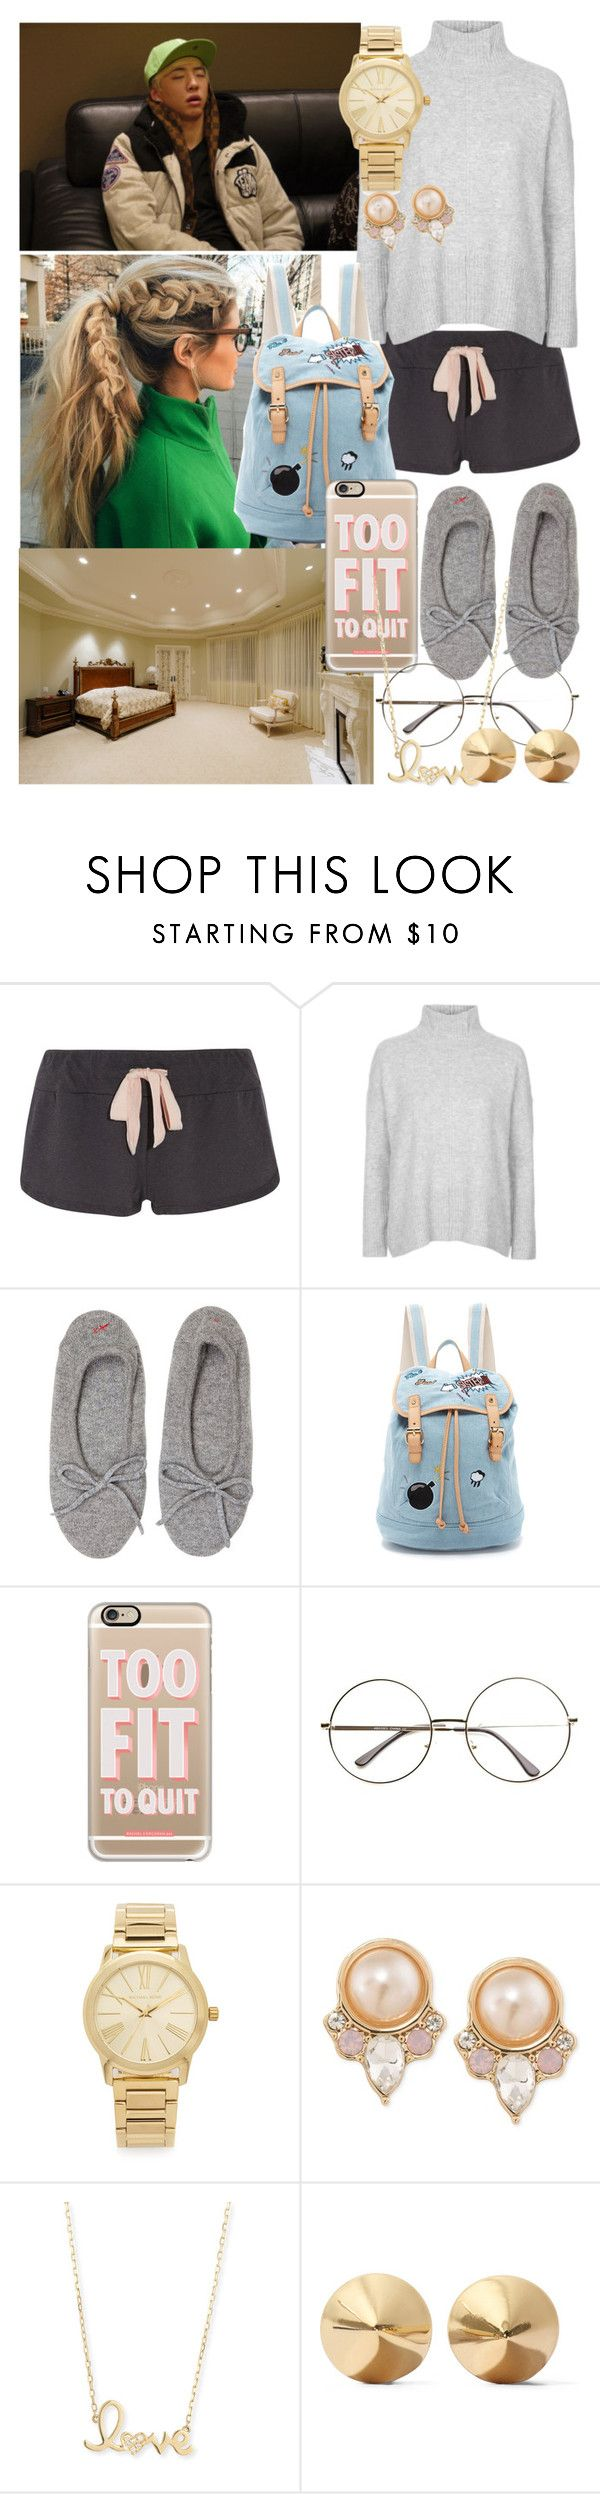 """yong guk falling asleep at your house"" by viminkook ❤ liked on Polyvore featuring Eberjey, Topshop, Banjo & Matilda, Paul & Joe Sister, Casetify, ZeroUV, Michael Kors, Carolee, Sydney Evan and Eddie Borgo"